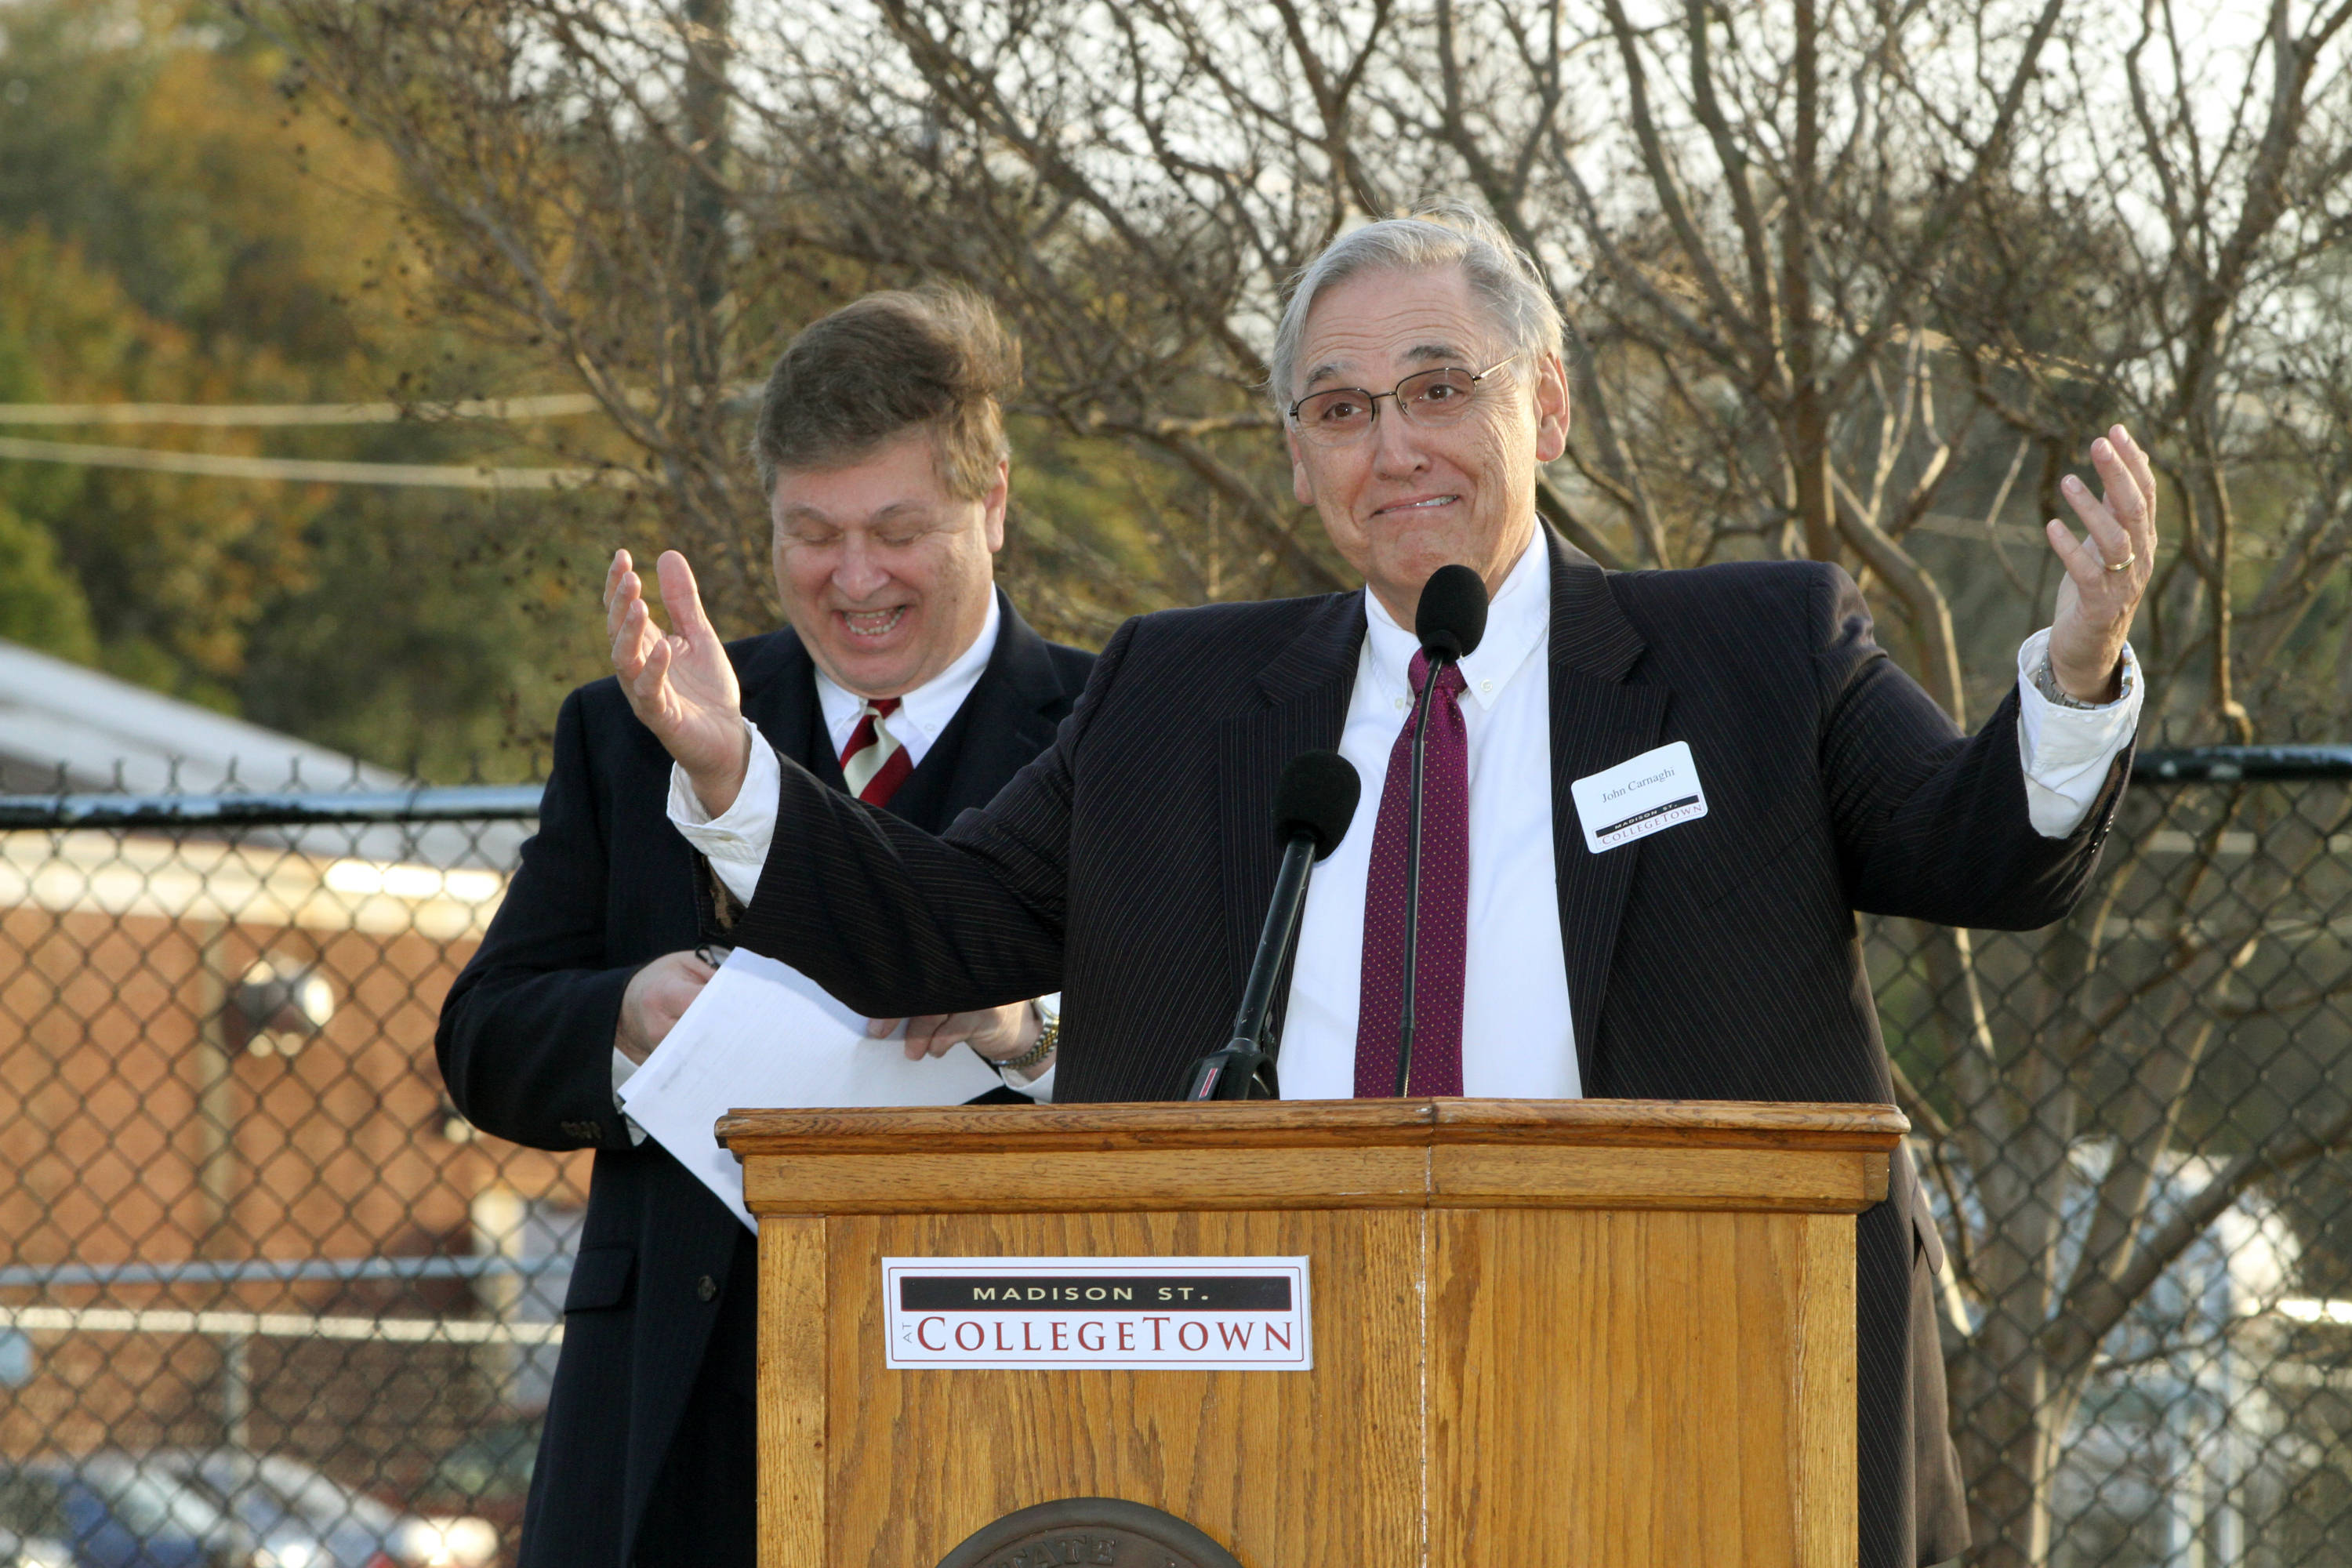 CollegeTown Groundbreaking: Press Conference with remarks held on the old intramural fields which is right across Woodward Avenue from CollegeTown. Groundbreaking was held on site.#$%^#$%^John Carnaghi, VP of Finance & Administration is at the podium.